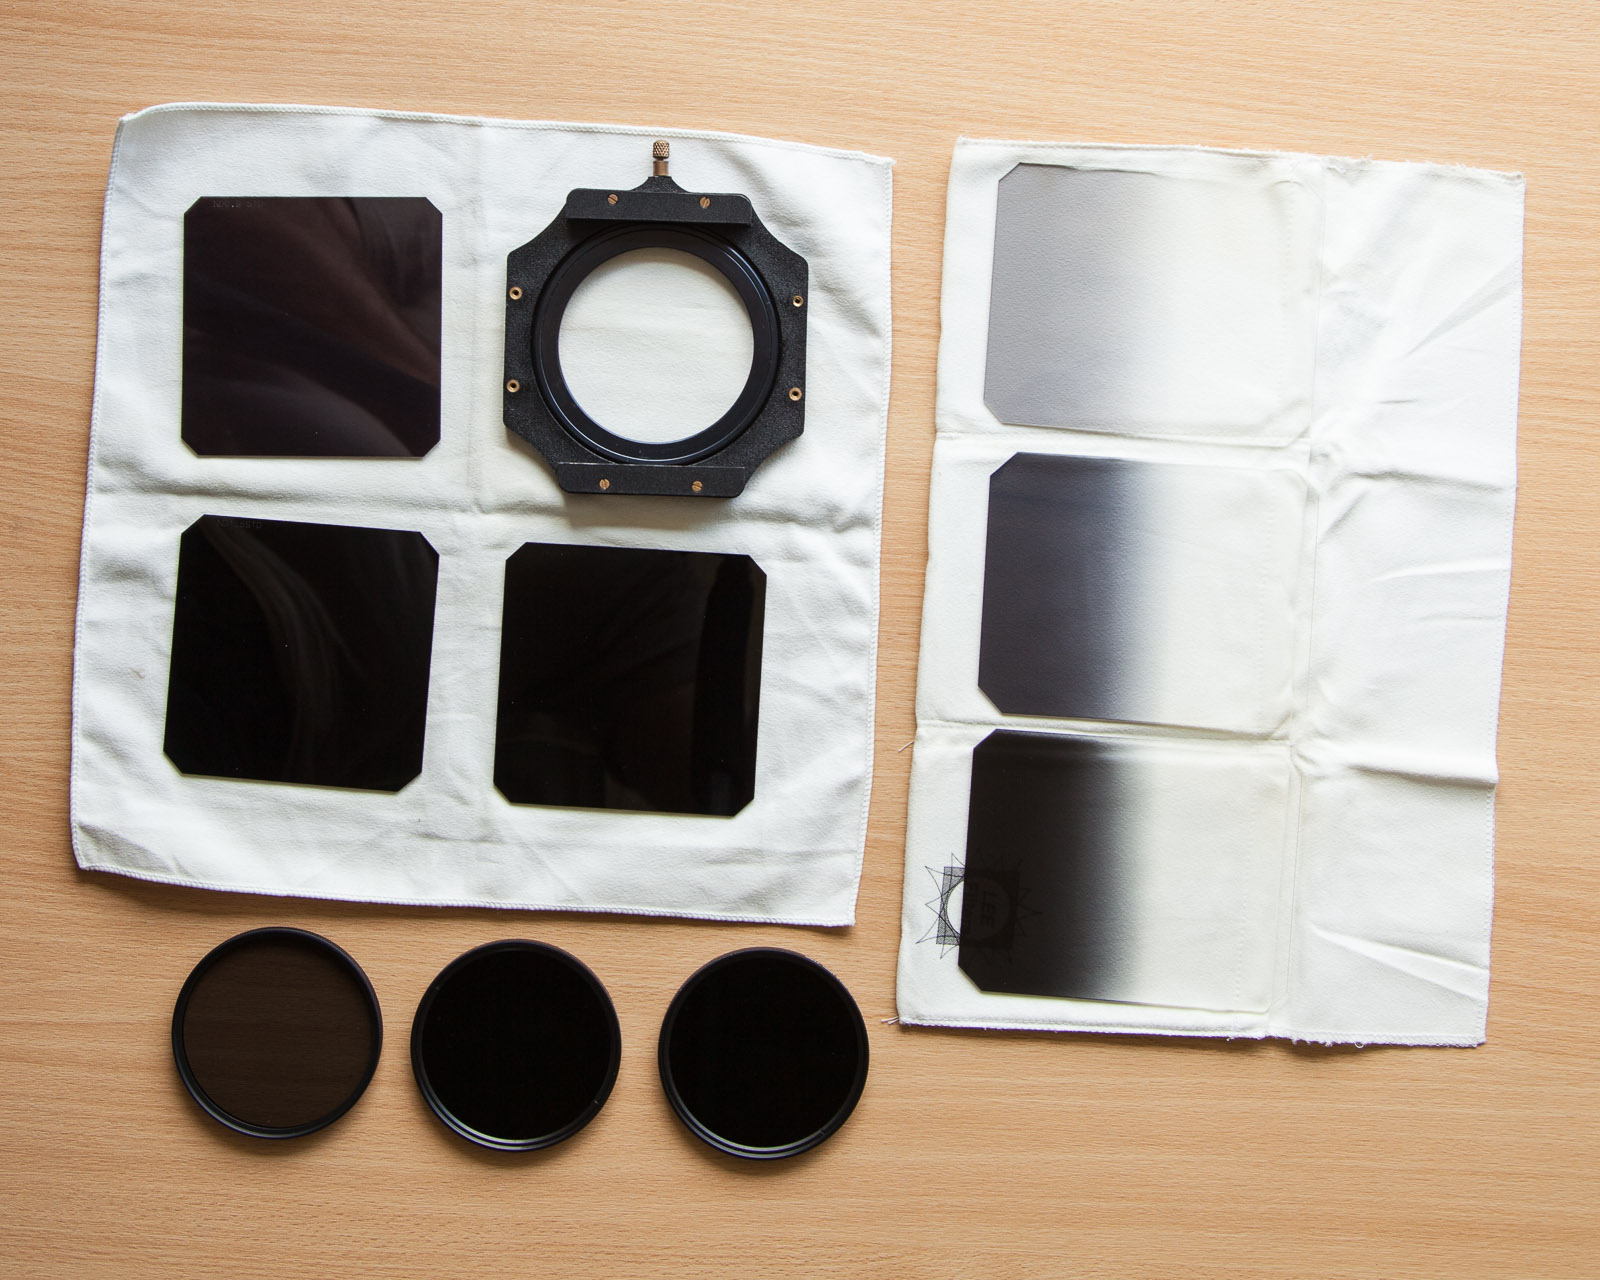 Little bits of plastic - here the ND and the ND Grad filters -  can make a world of difference to the 'look' of the photograph.